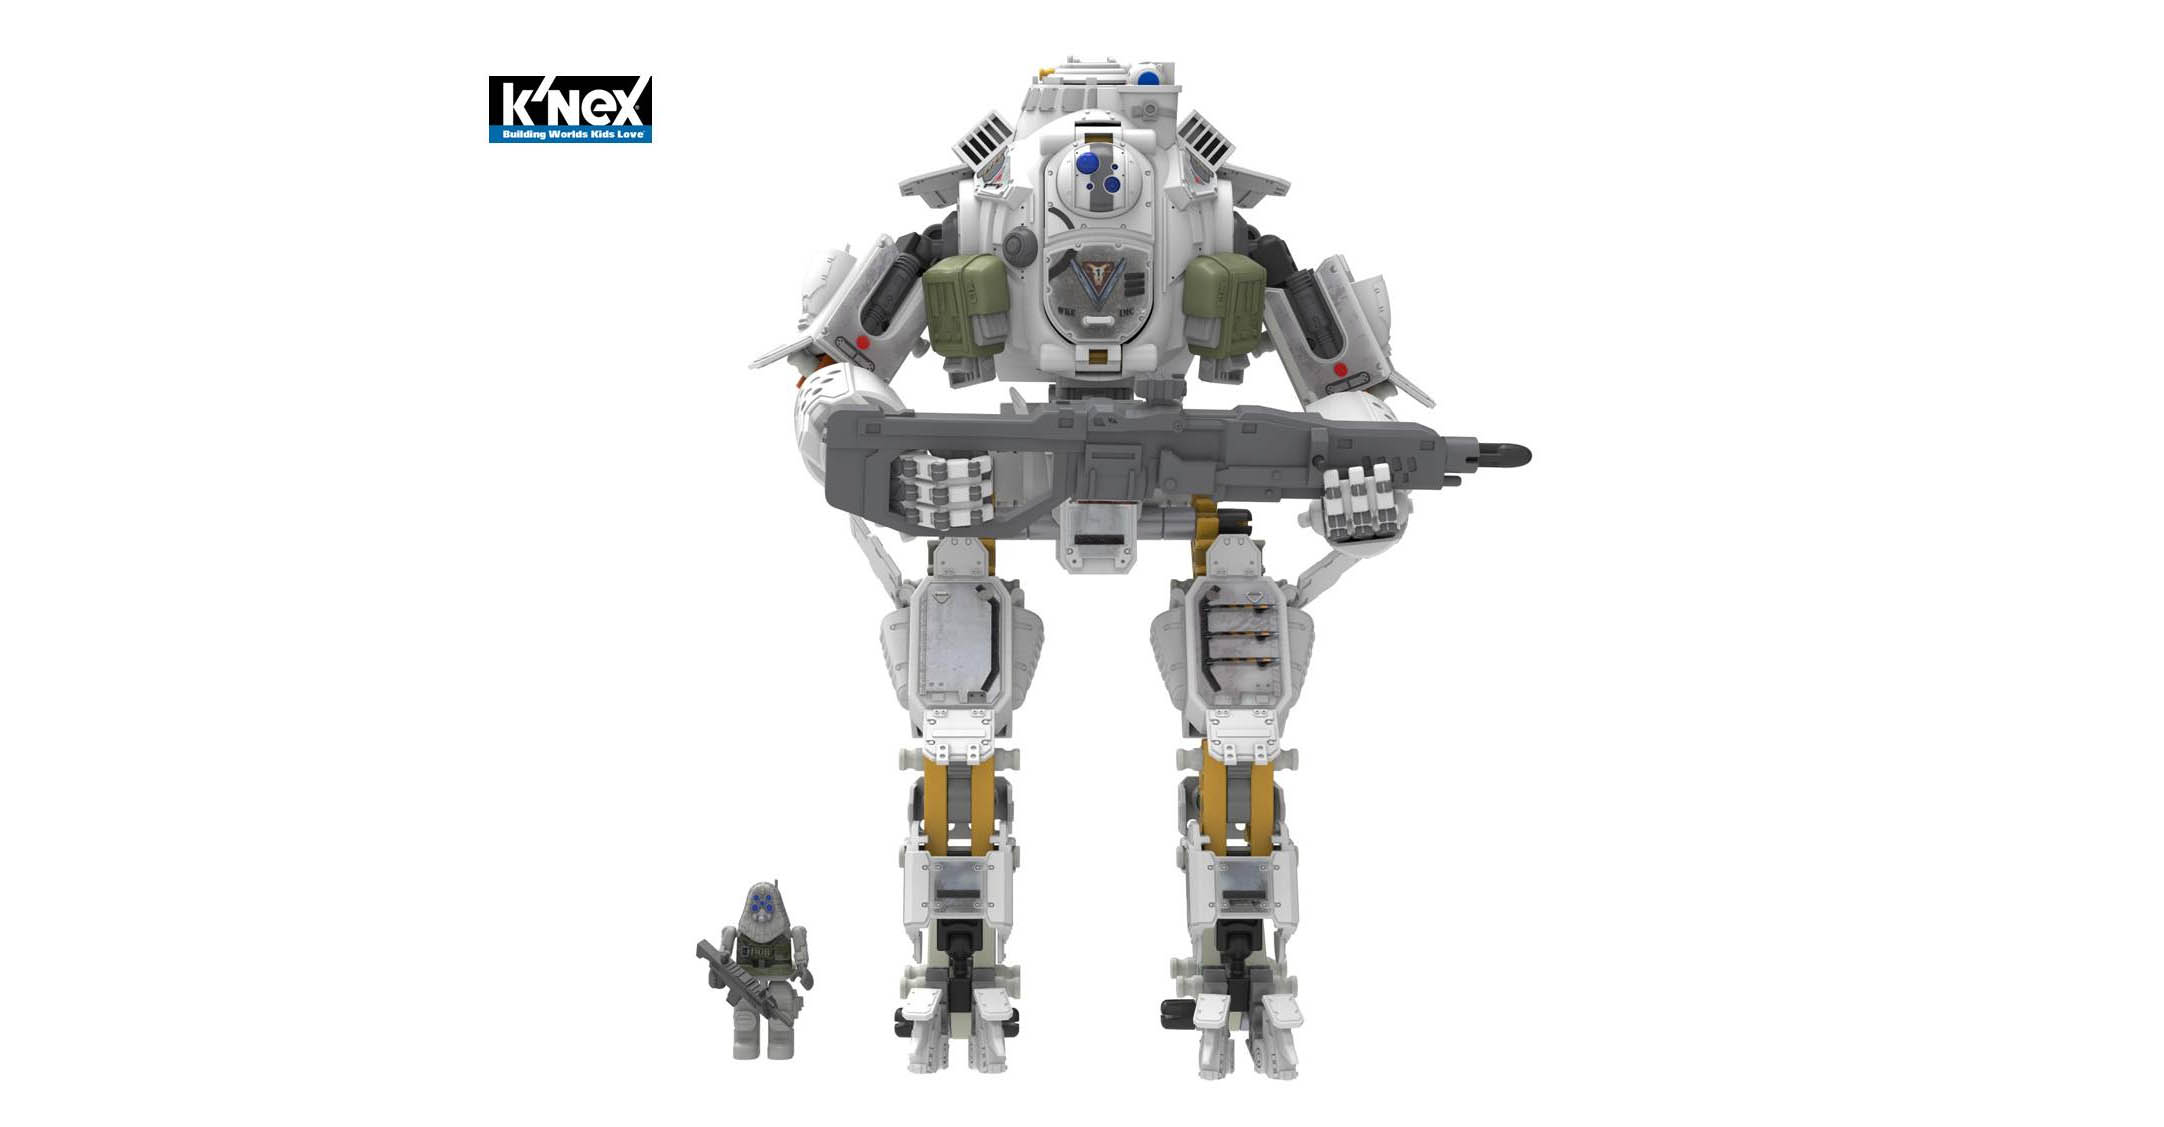 K Nex Titanfall Toys Drop In At London Toy Fair